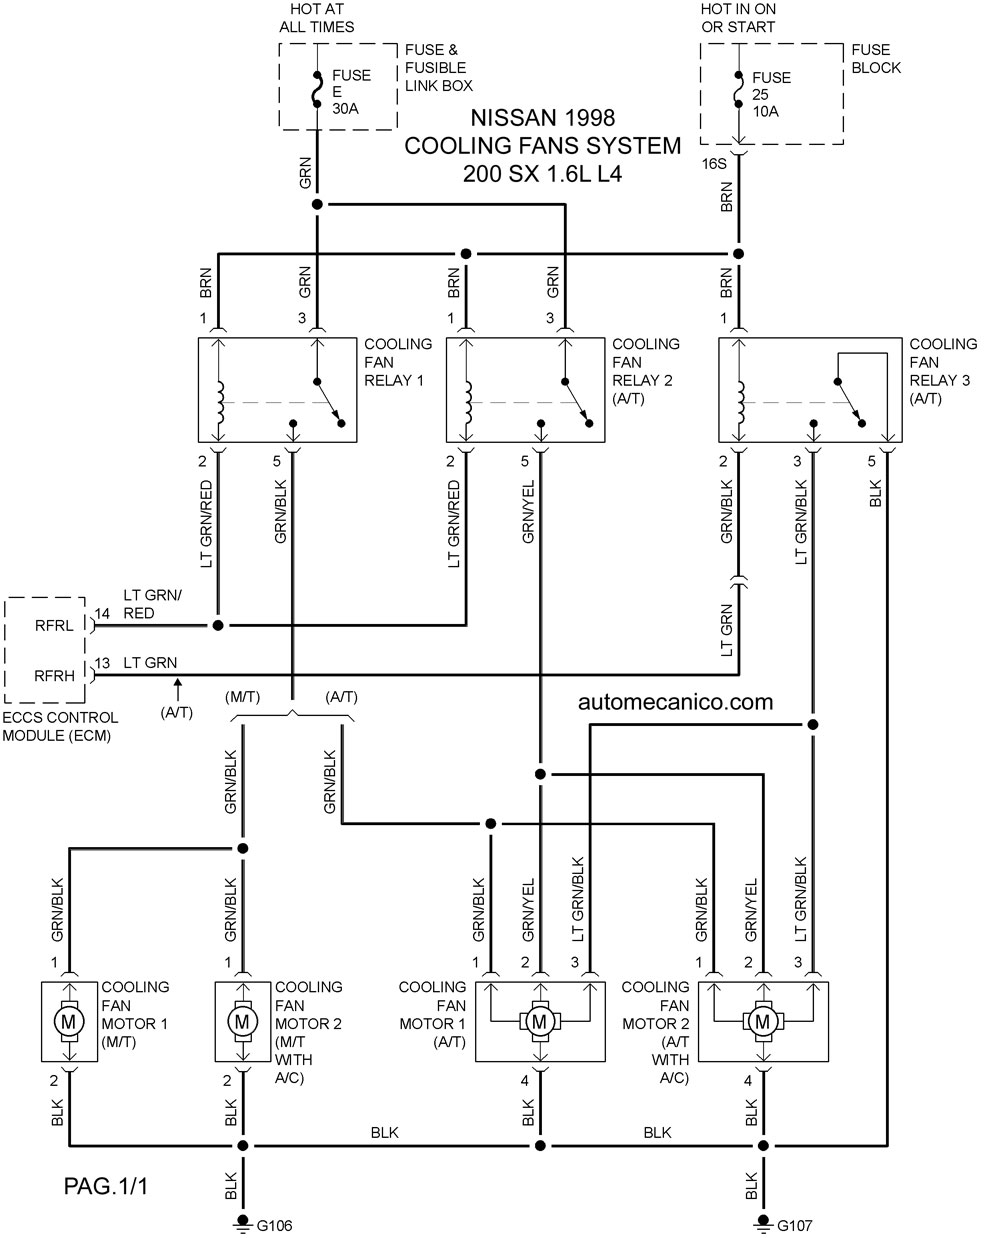 200XScf9816001 Nissan Quest Wiring Diagram on